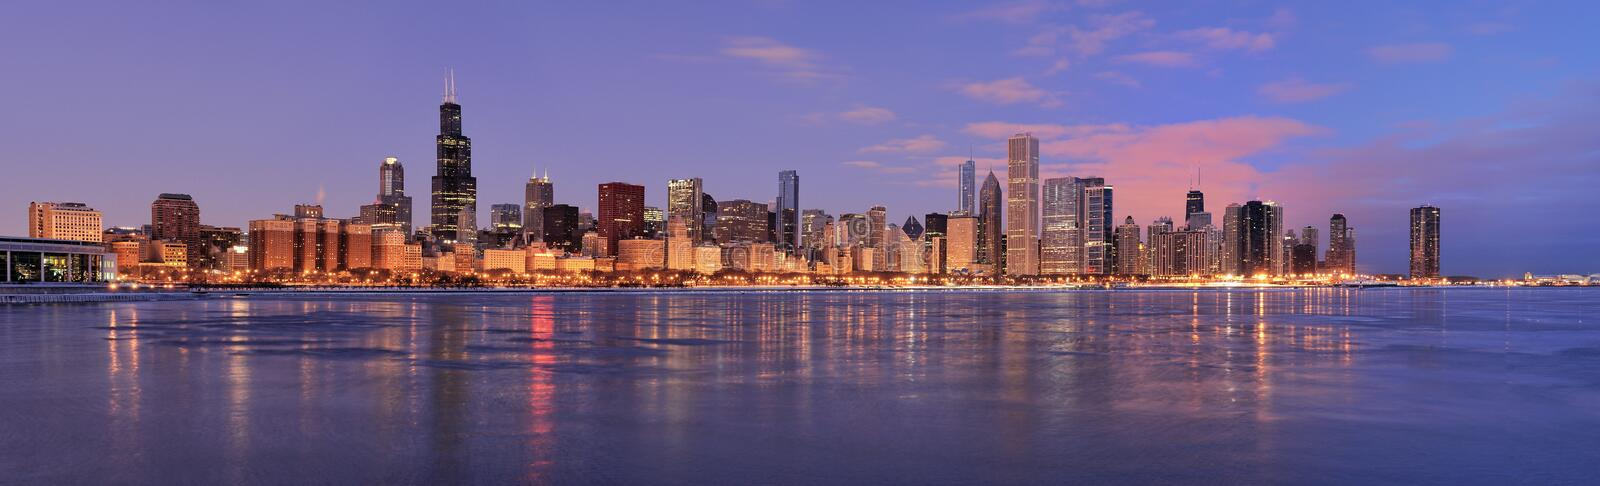 Chicago skyline at dawn stock photography